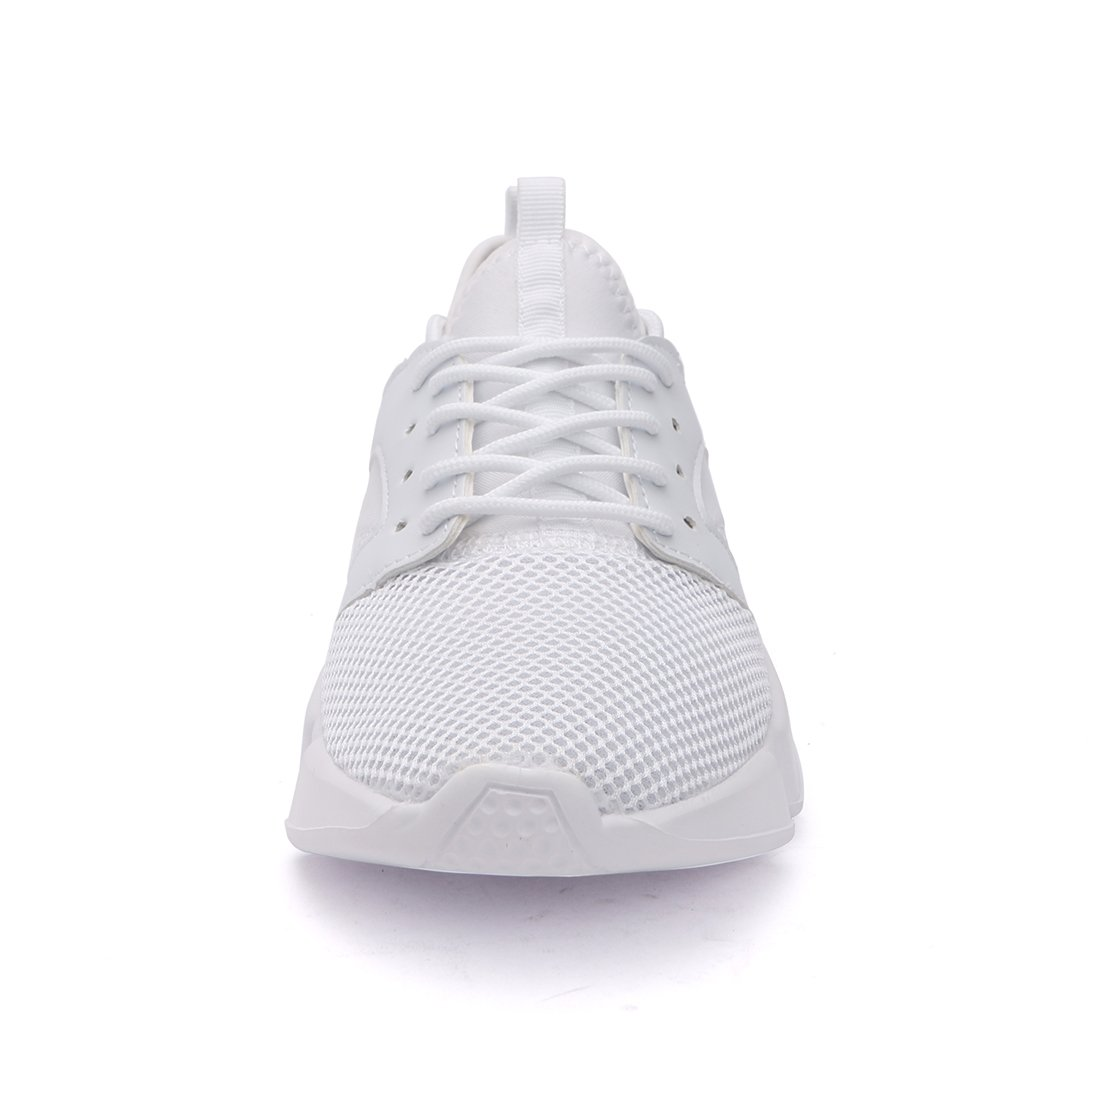 Women's Lightweight Walking Shoes Breathable Mesh Soft Sole for Casual Walk Outdoor Workout Travel Work by Belilent (Image #4)